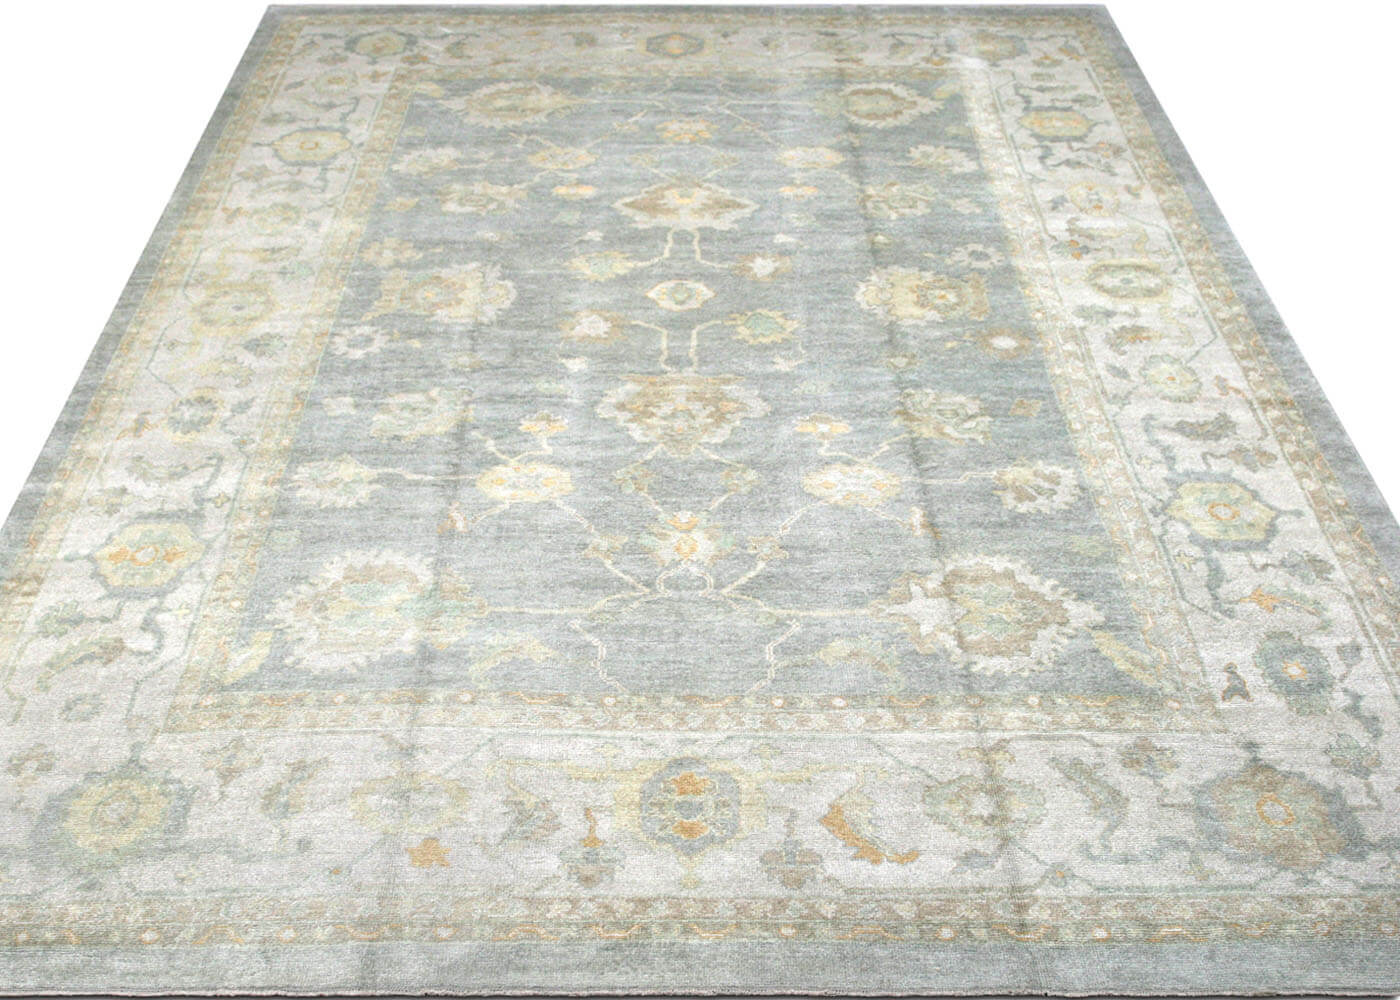 "Recently Woven Turkish Oushak Carpet - 12'2"" x 17'10"""